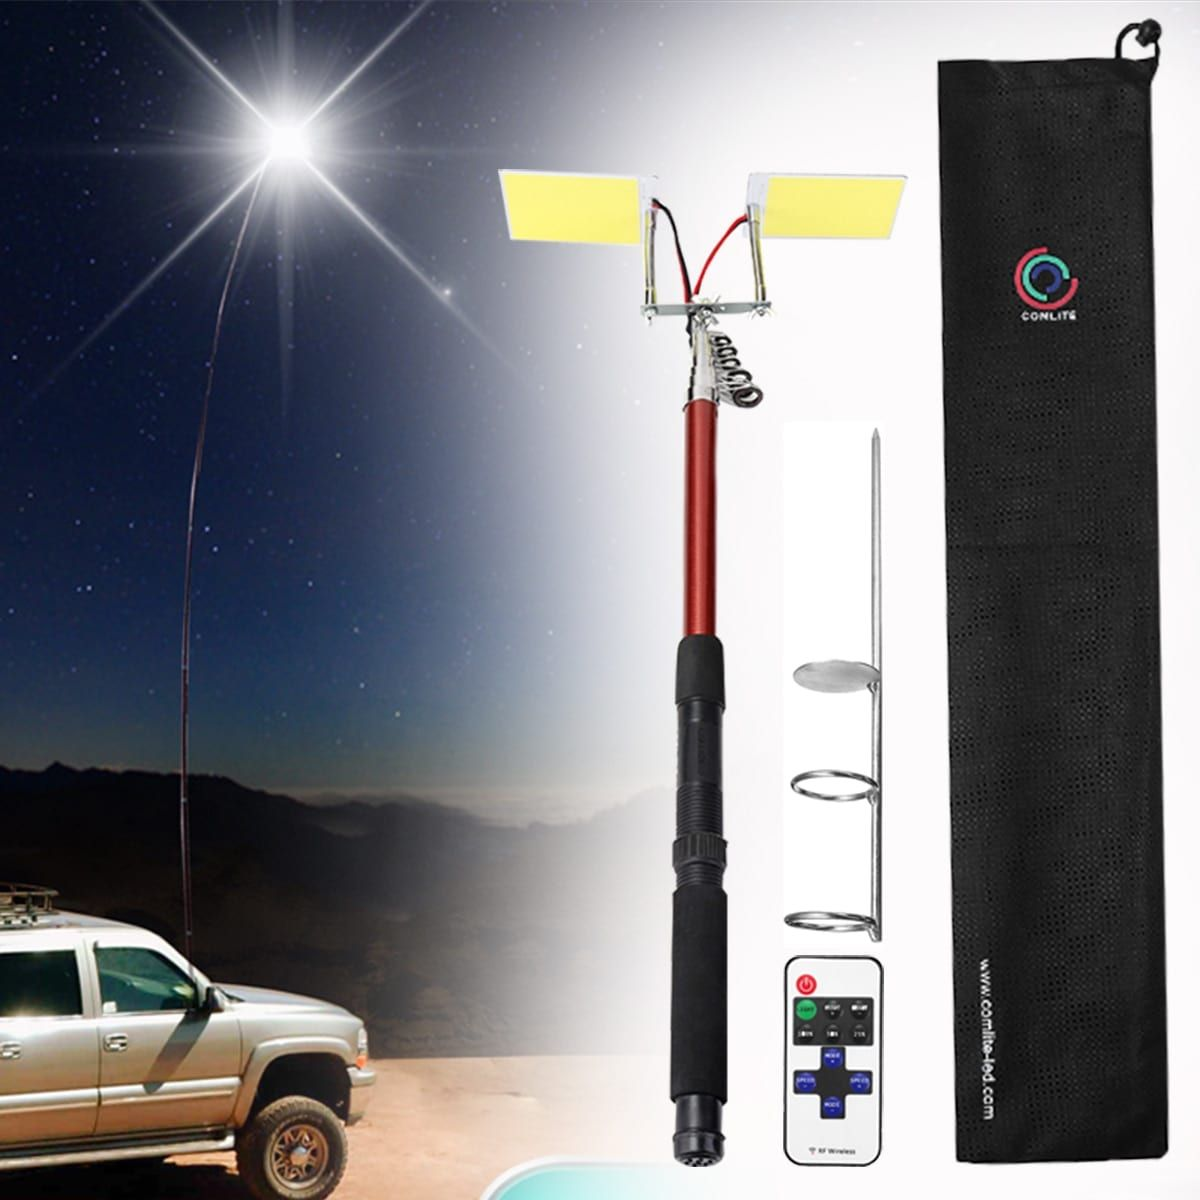 3 75m 12v Telescopic Led Fishing Rod Lantern Camping Lamp Outdoor Lanterns Outside Lamps